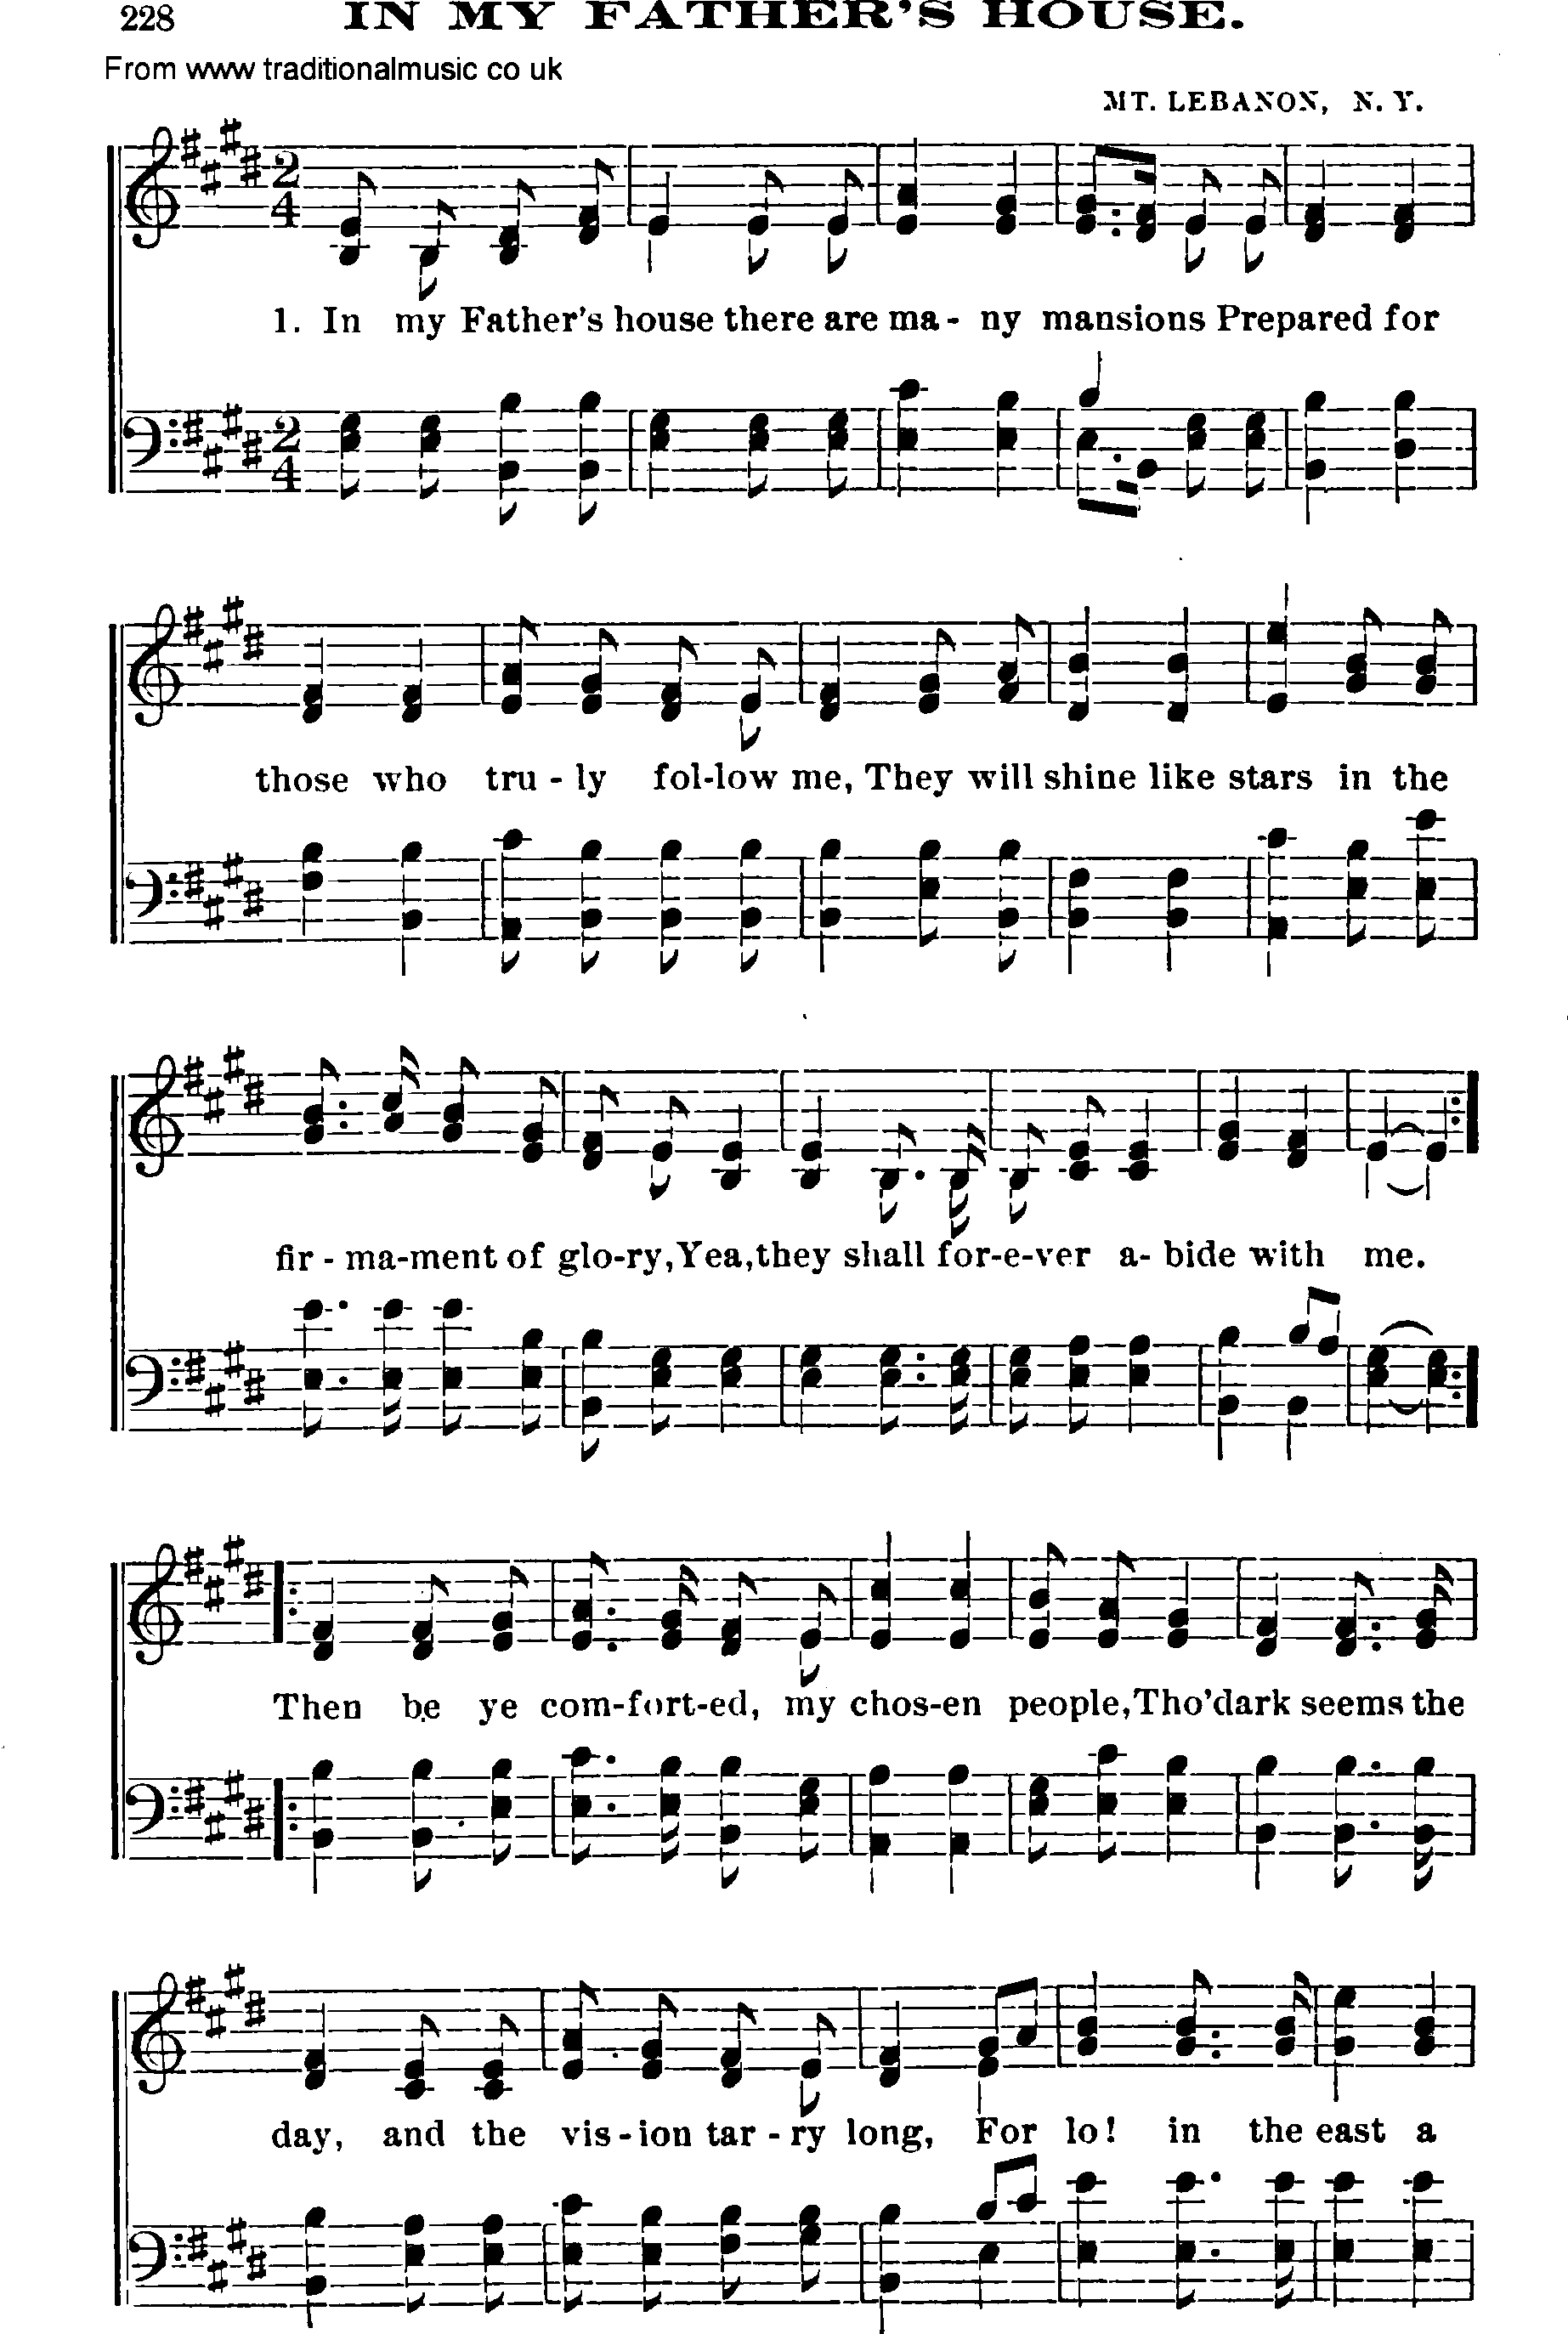 Shaker music song in my fathers house sheet music and pdf for My house house music